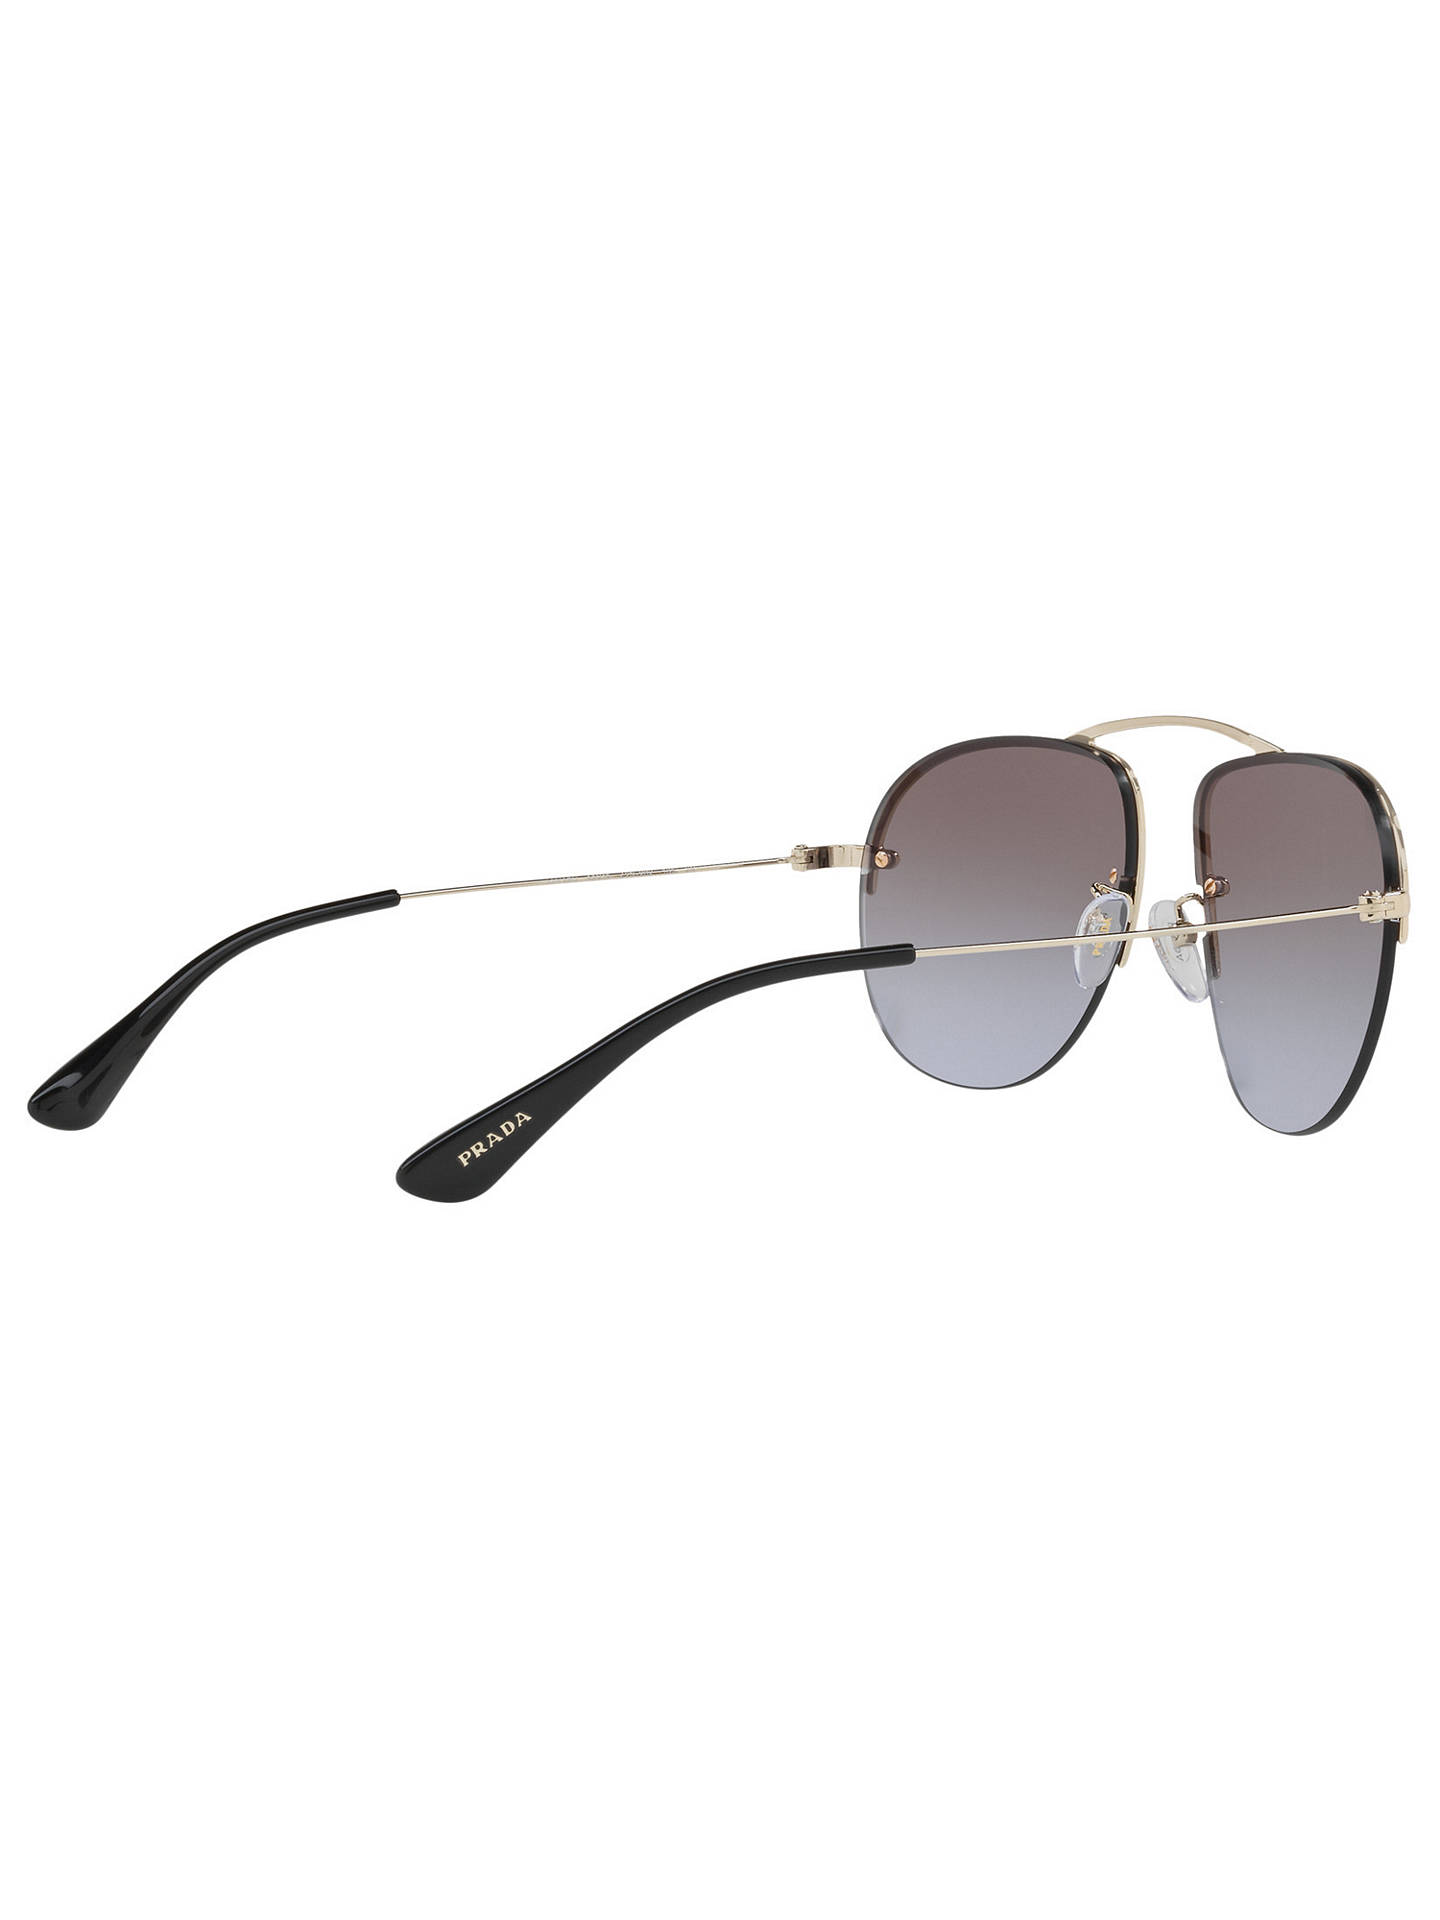 b1e3f05980f8 ... france buyprada pr 58os aviator sunglasses pale gold mirror violet  online at johnlewis aa0d9 3920e